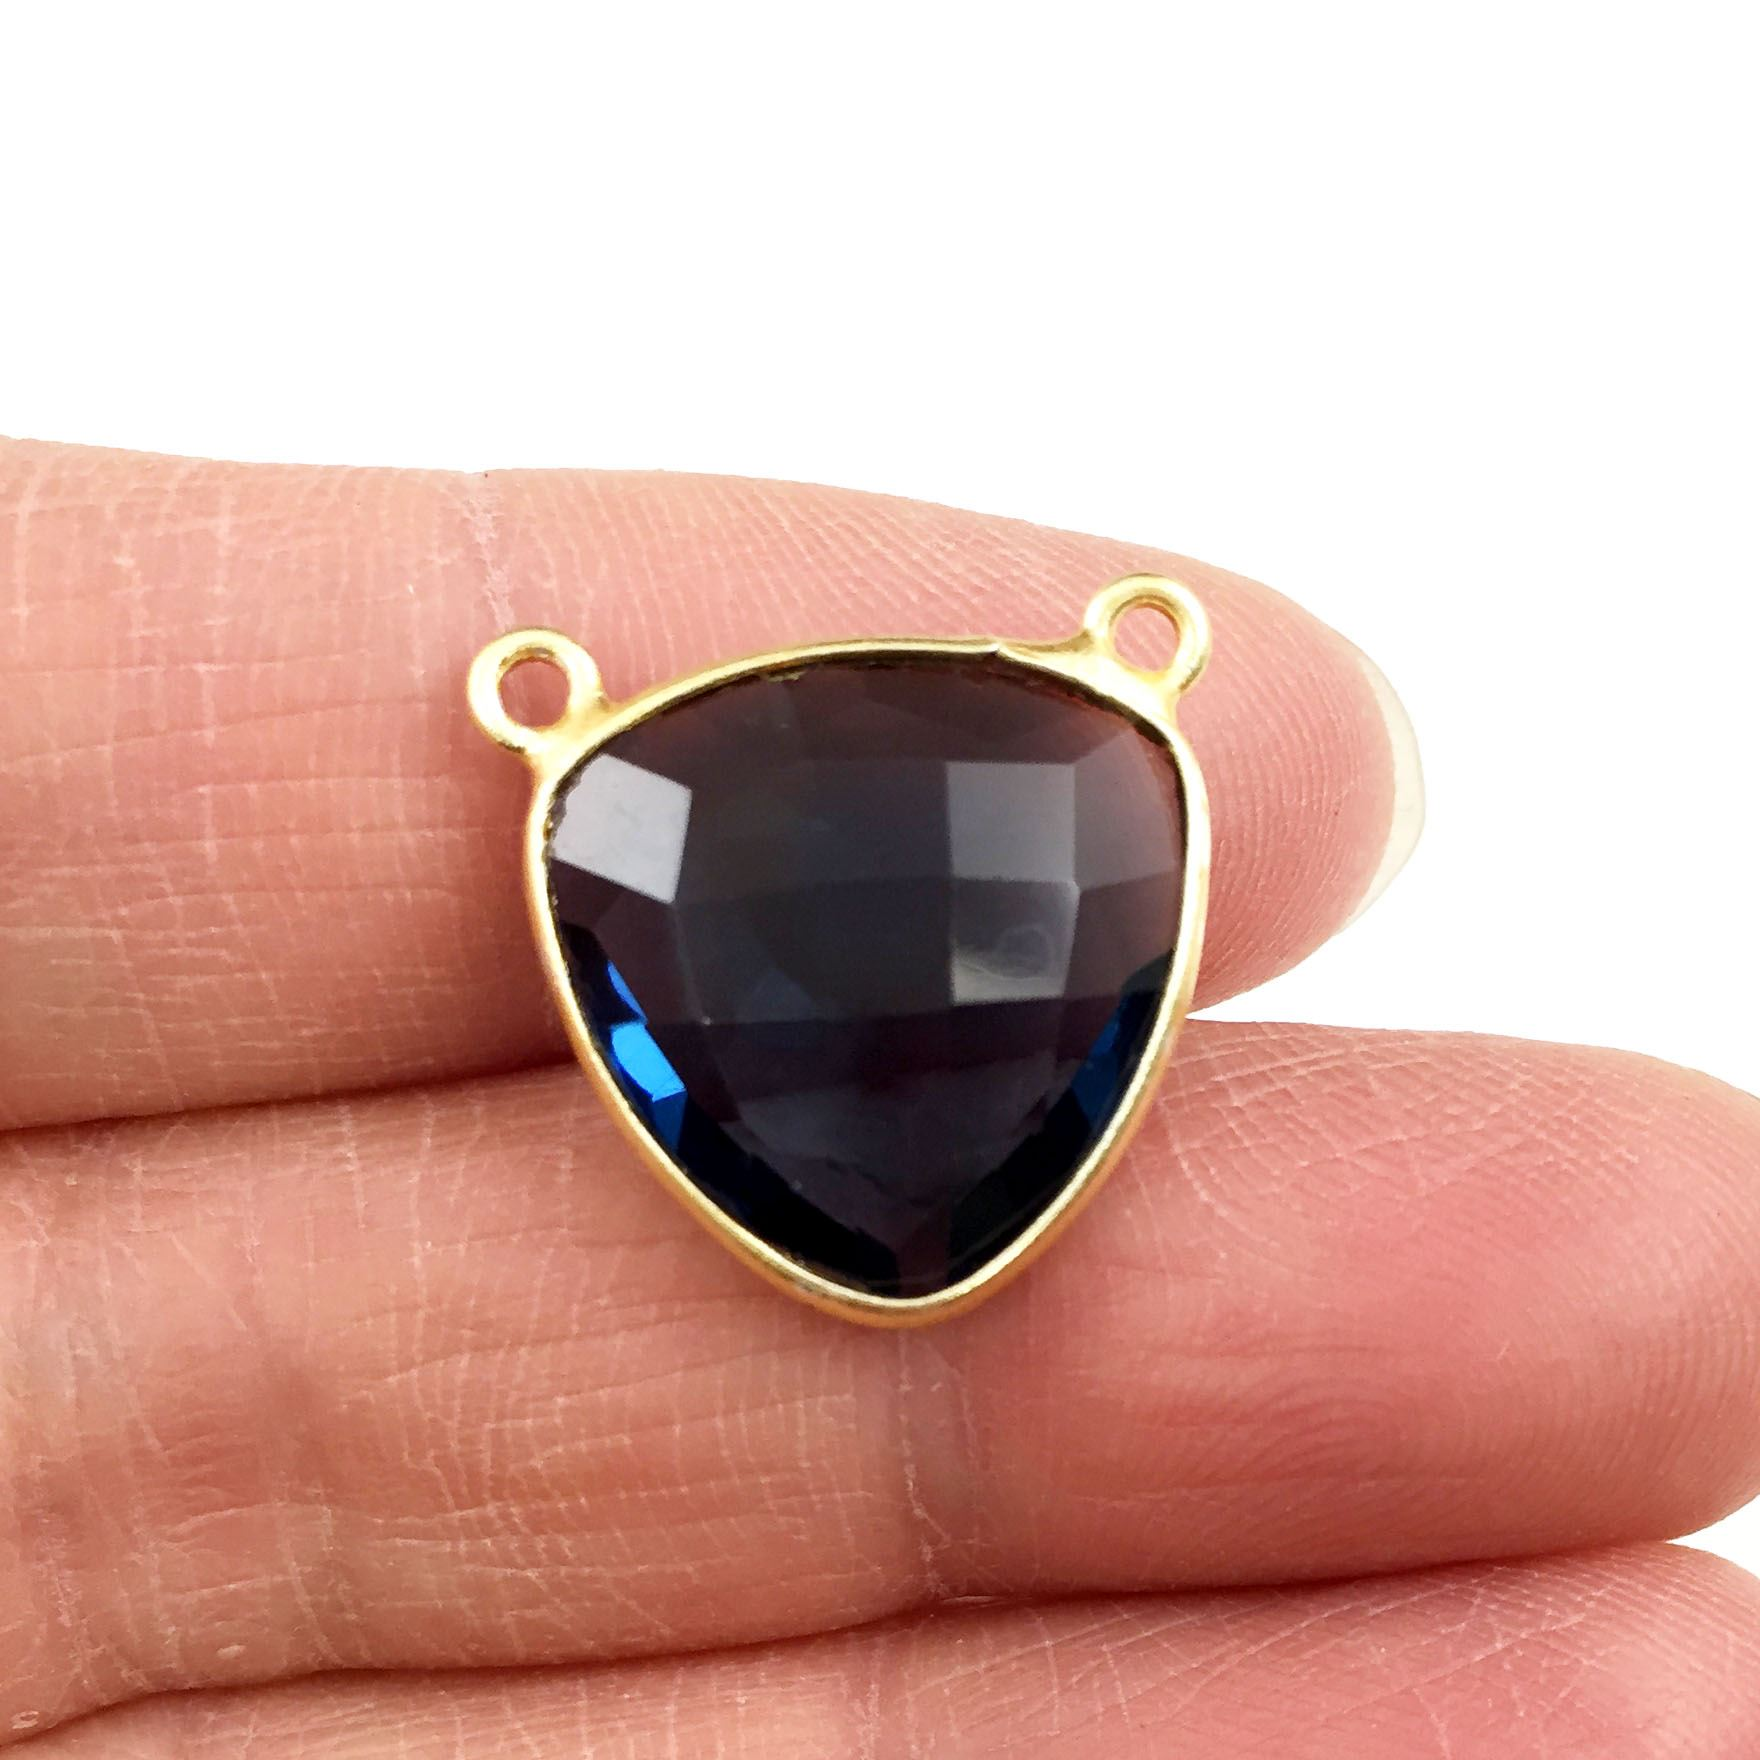 Bezel Gemstone Connector Pendant - Iolite Quartz - Gold plated Sterling Silver - Small Trillion Shaped Faceted - 15mm - 1 piece